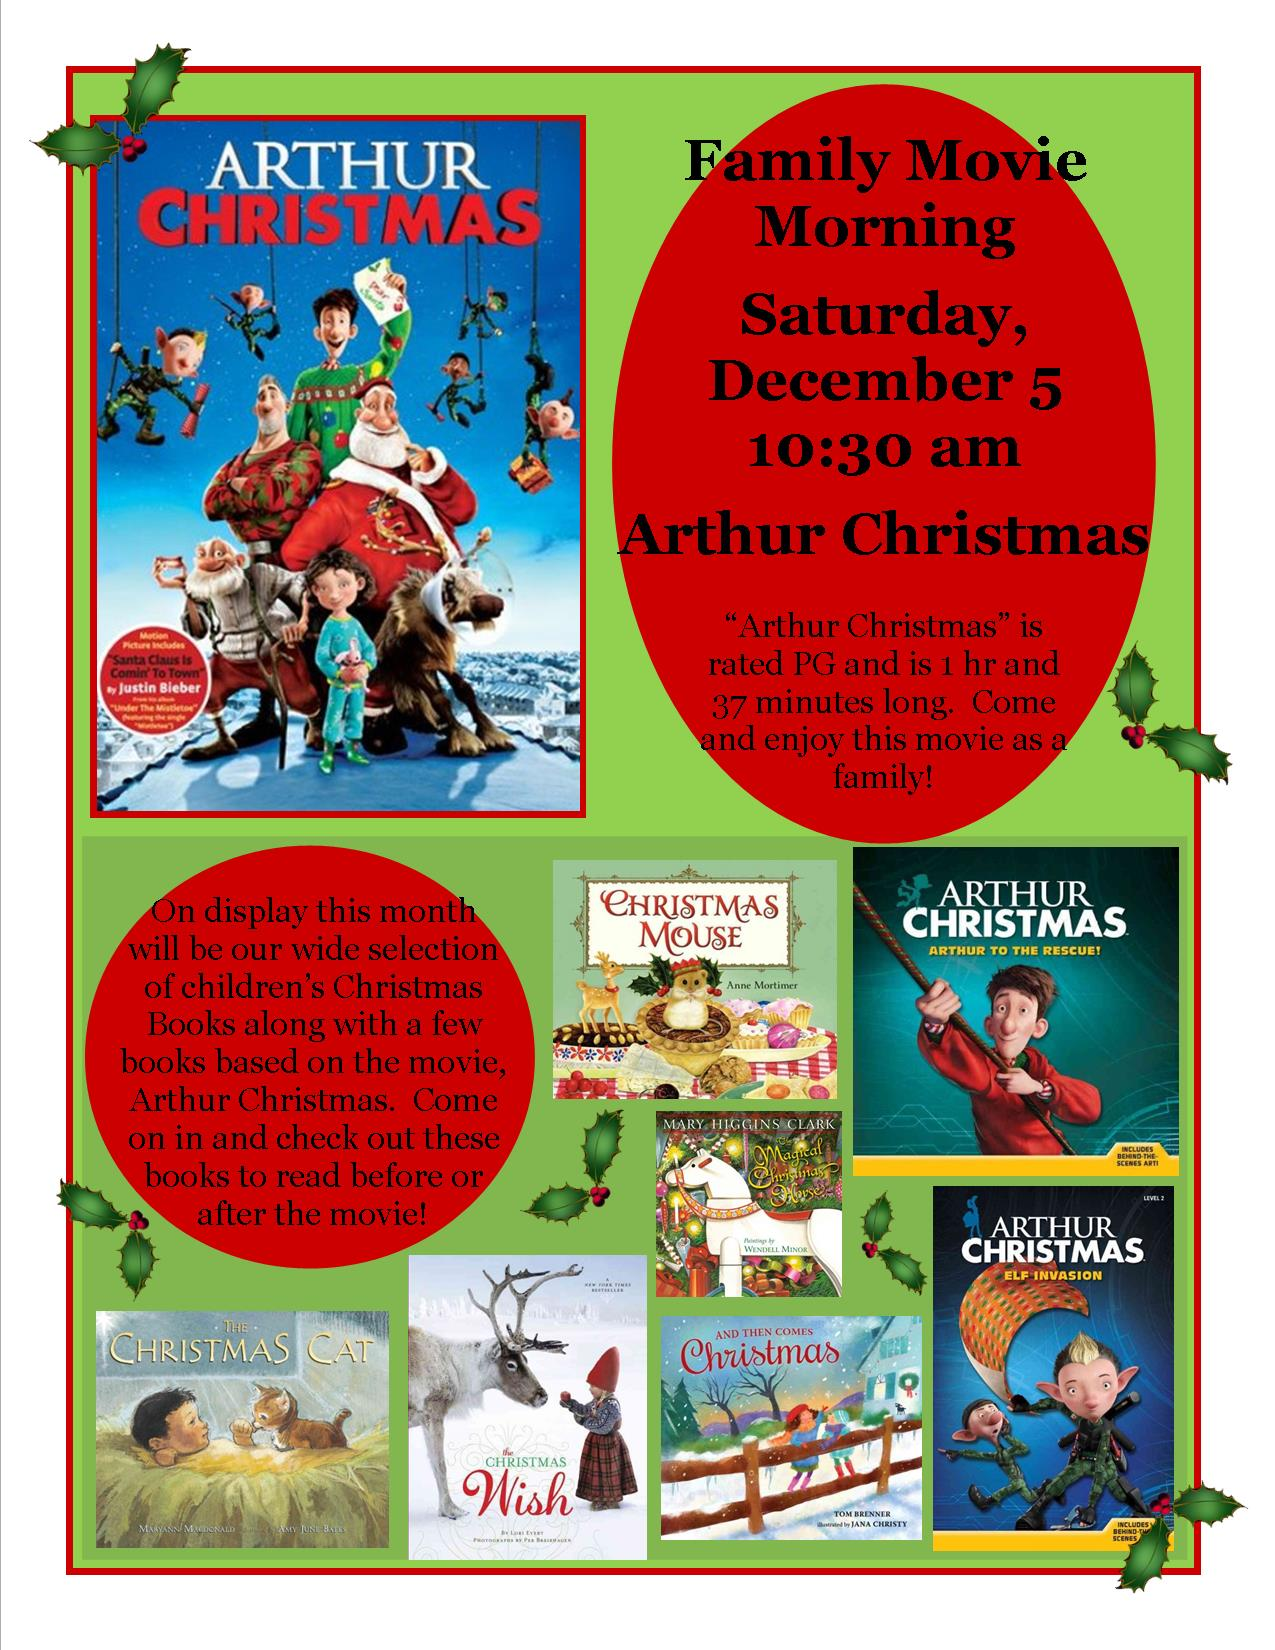 Arthur Christmas Poster.Dassel Public Library Family Movie Morning